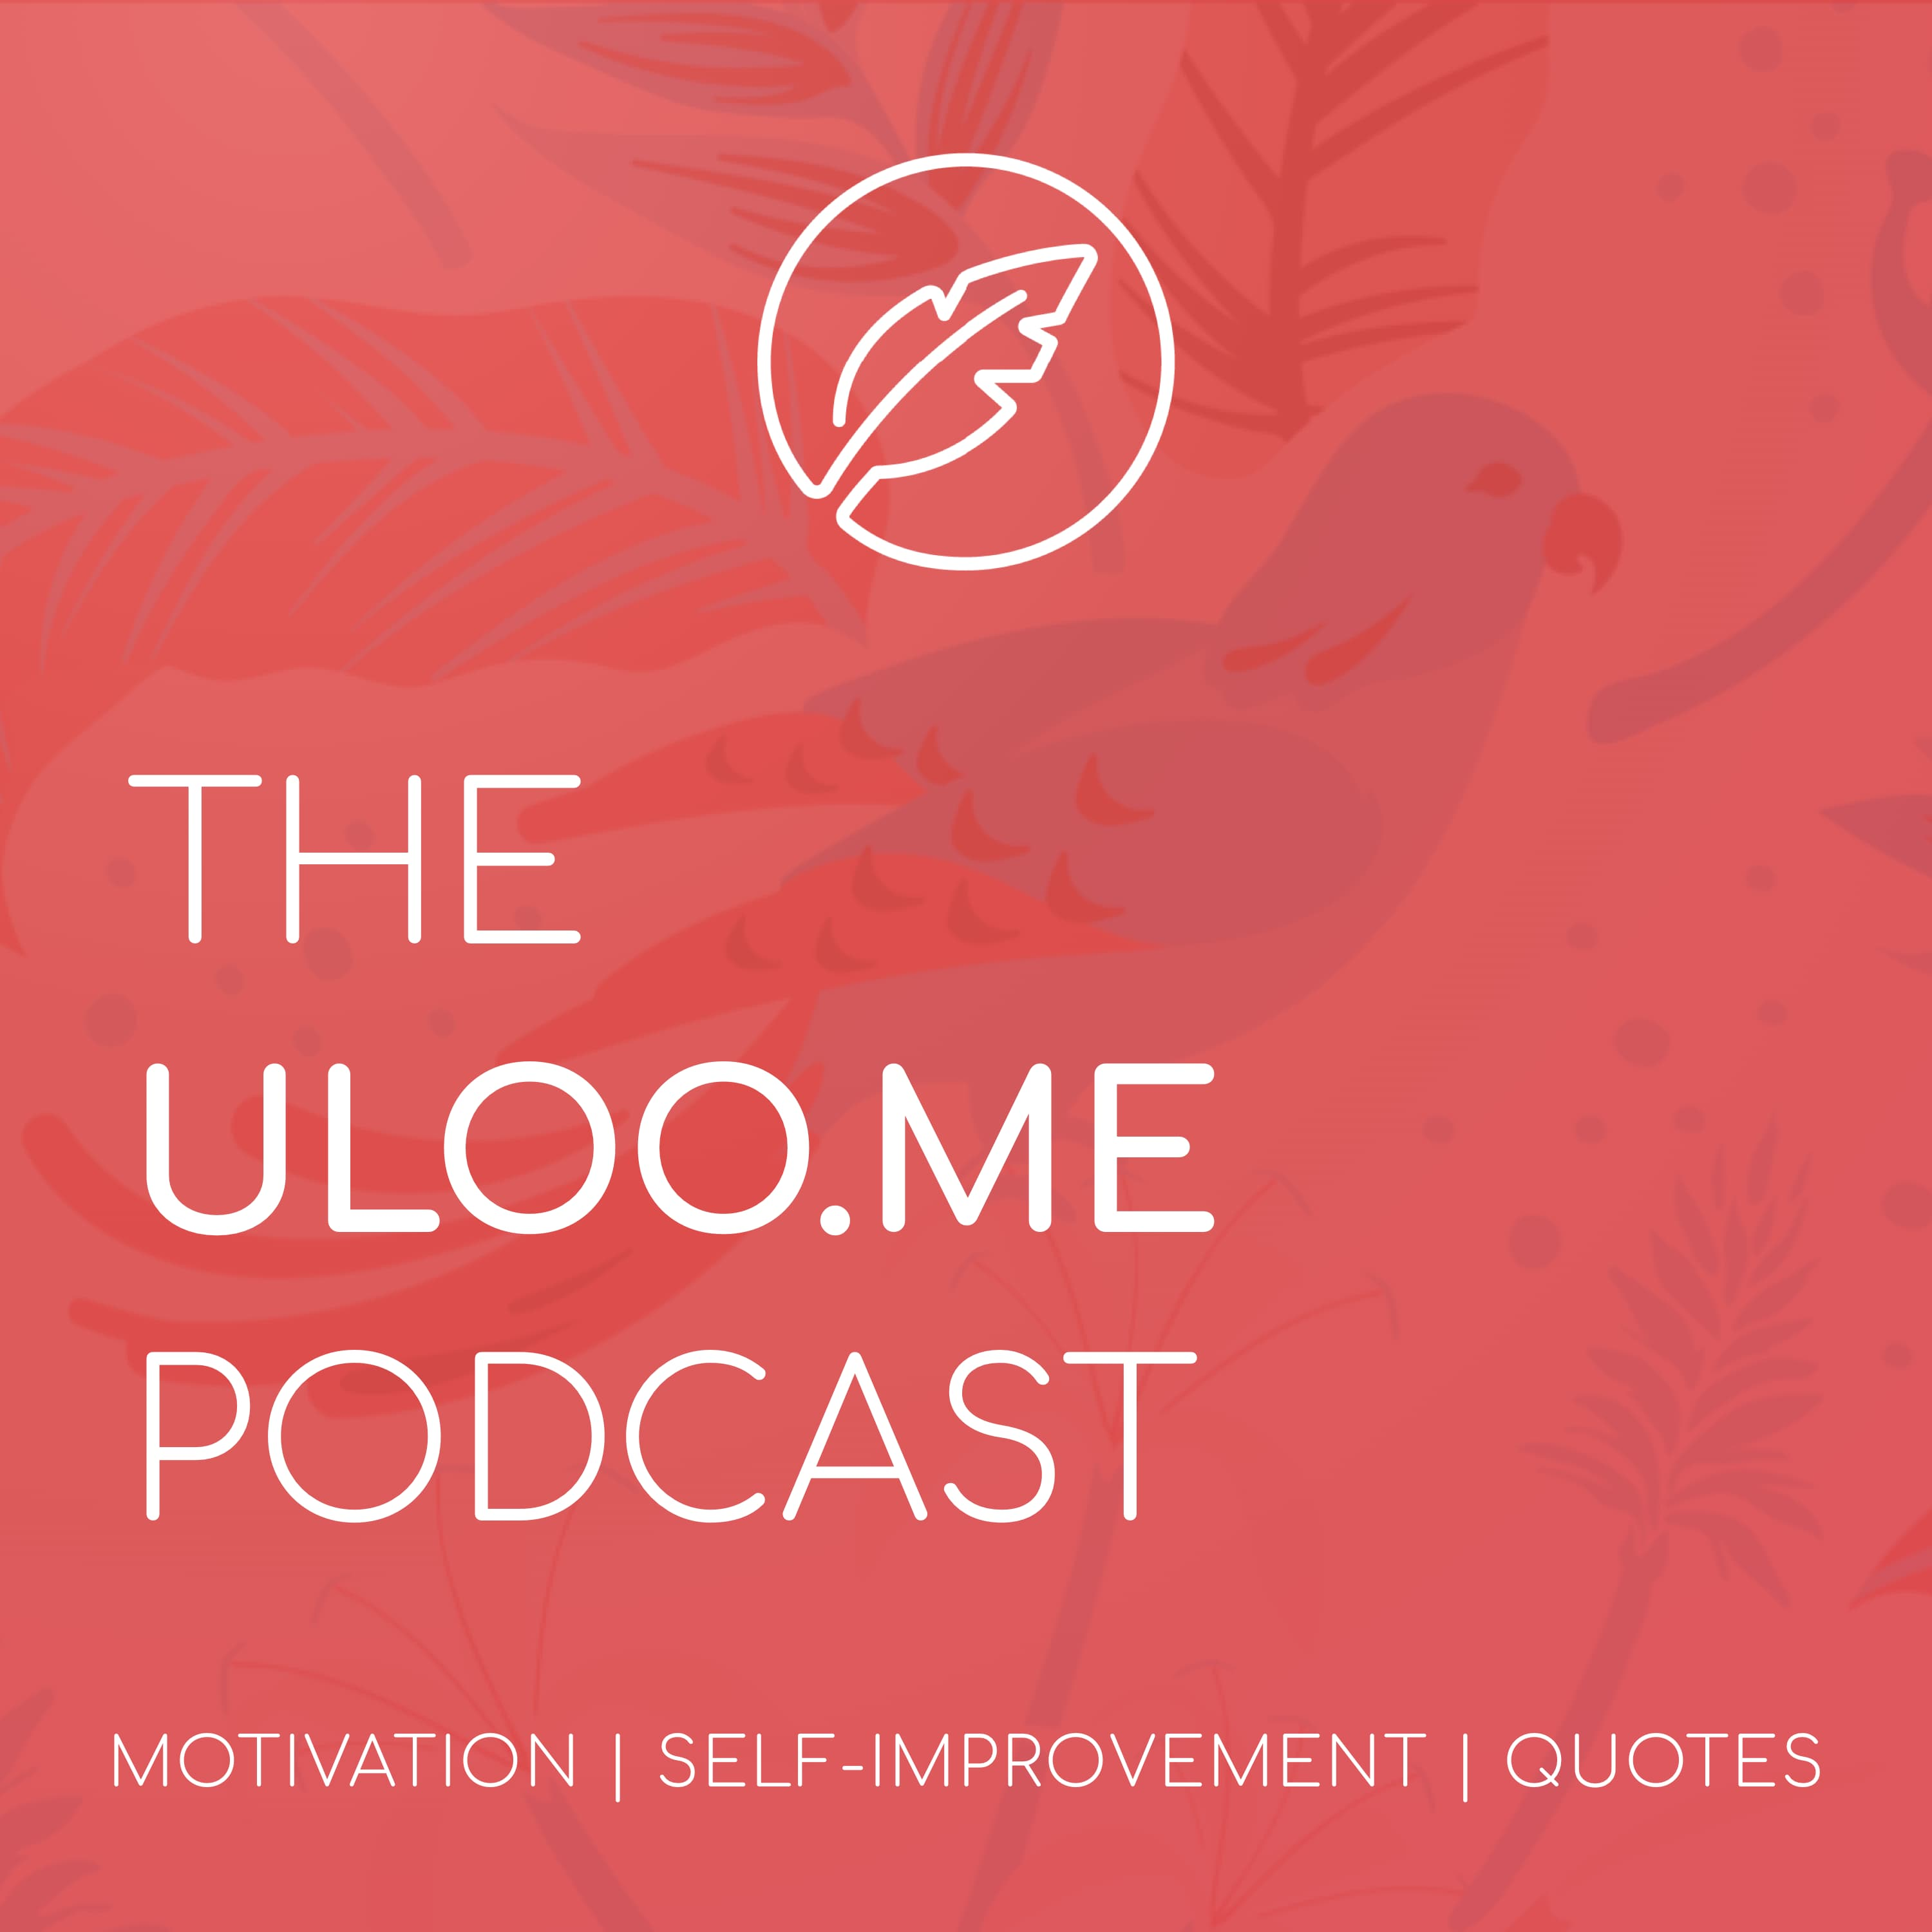 The Uloo.me Podcast